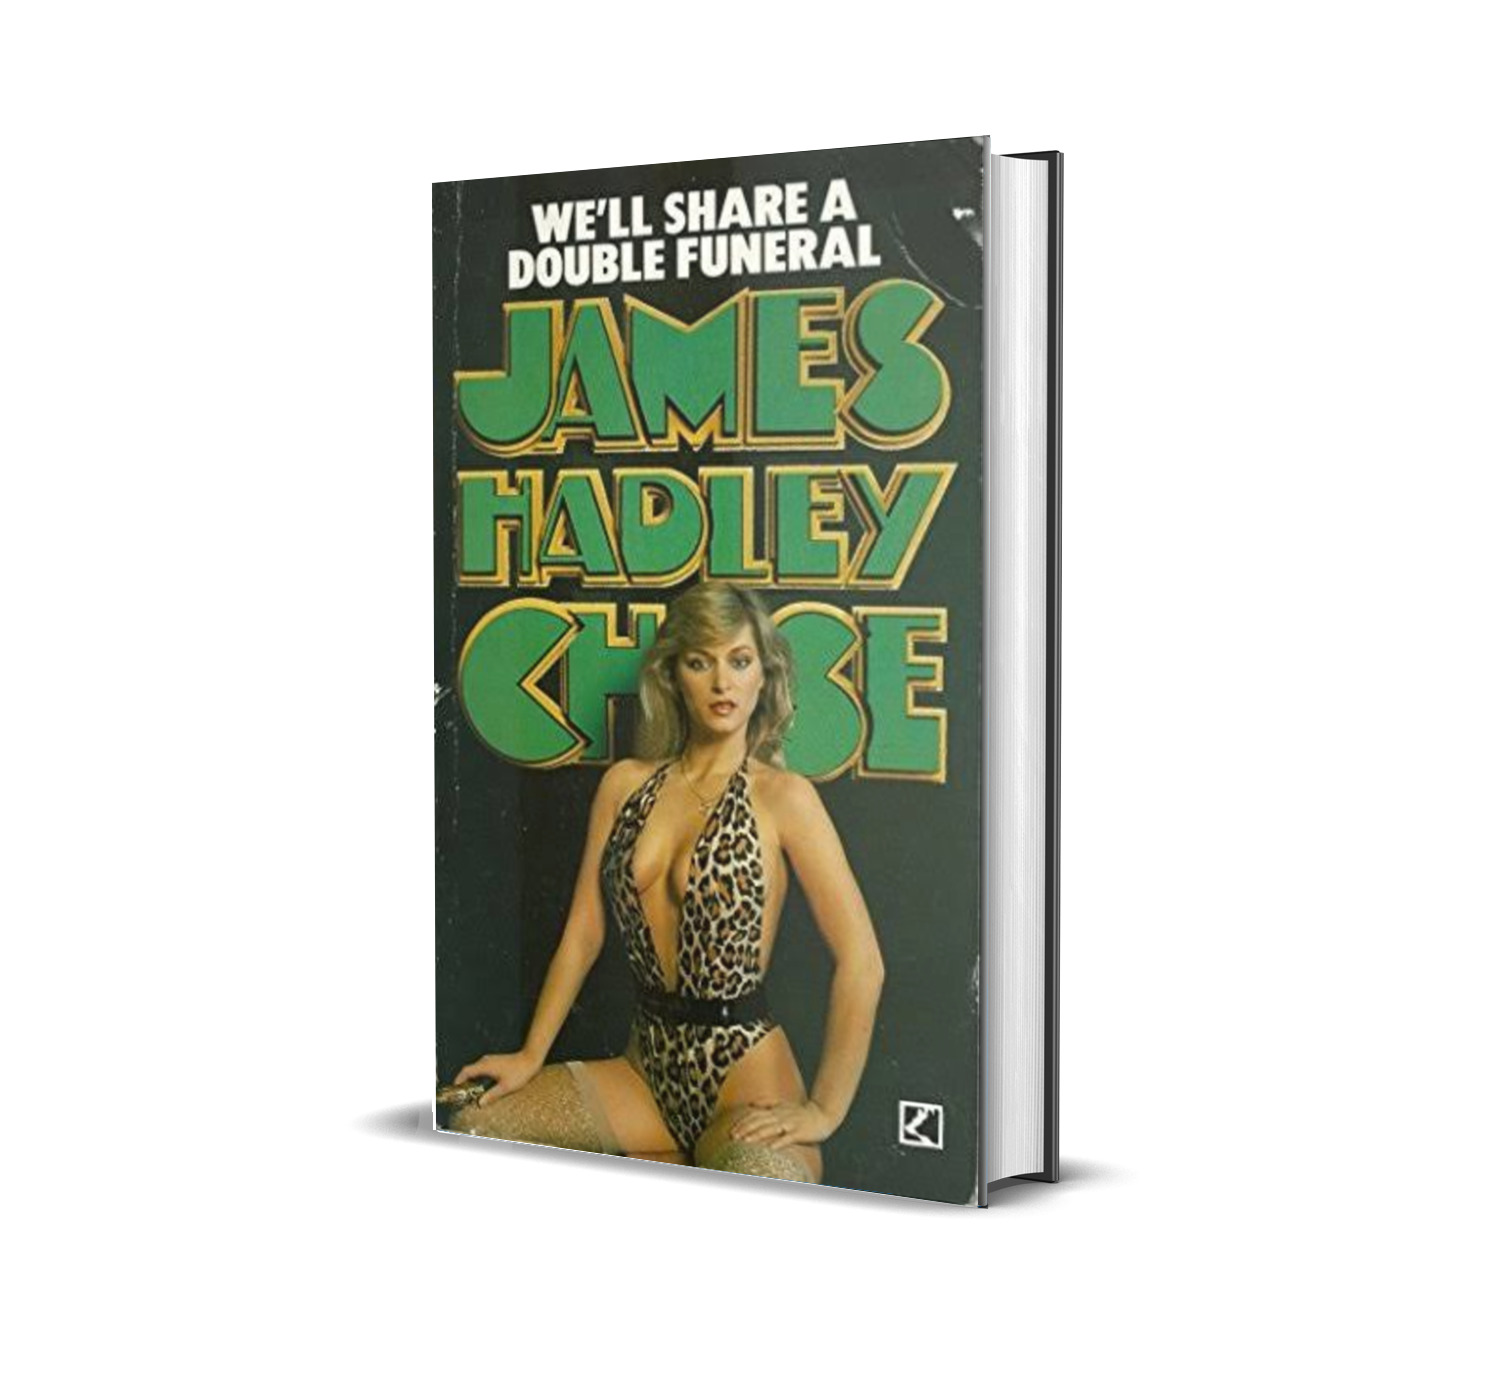 WE'LL SHARE A DOUBLE FUNERAL JAMES HADLEY CHASE